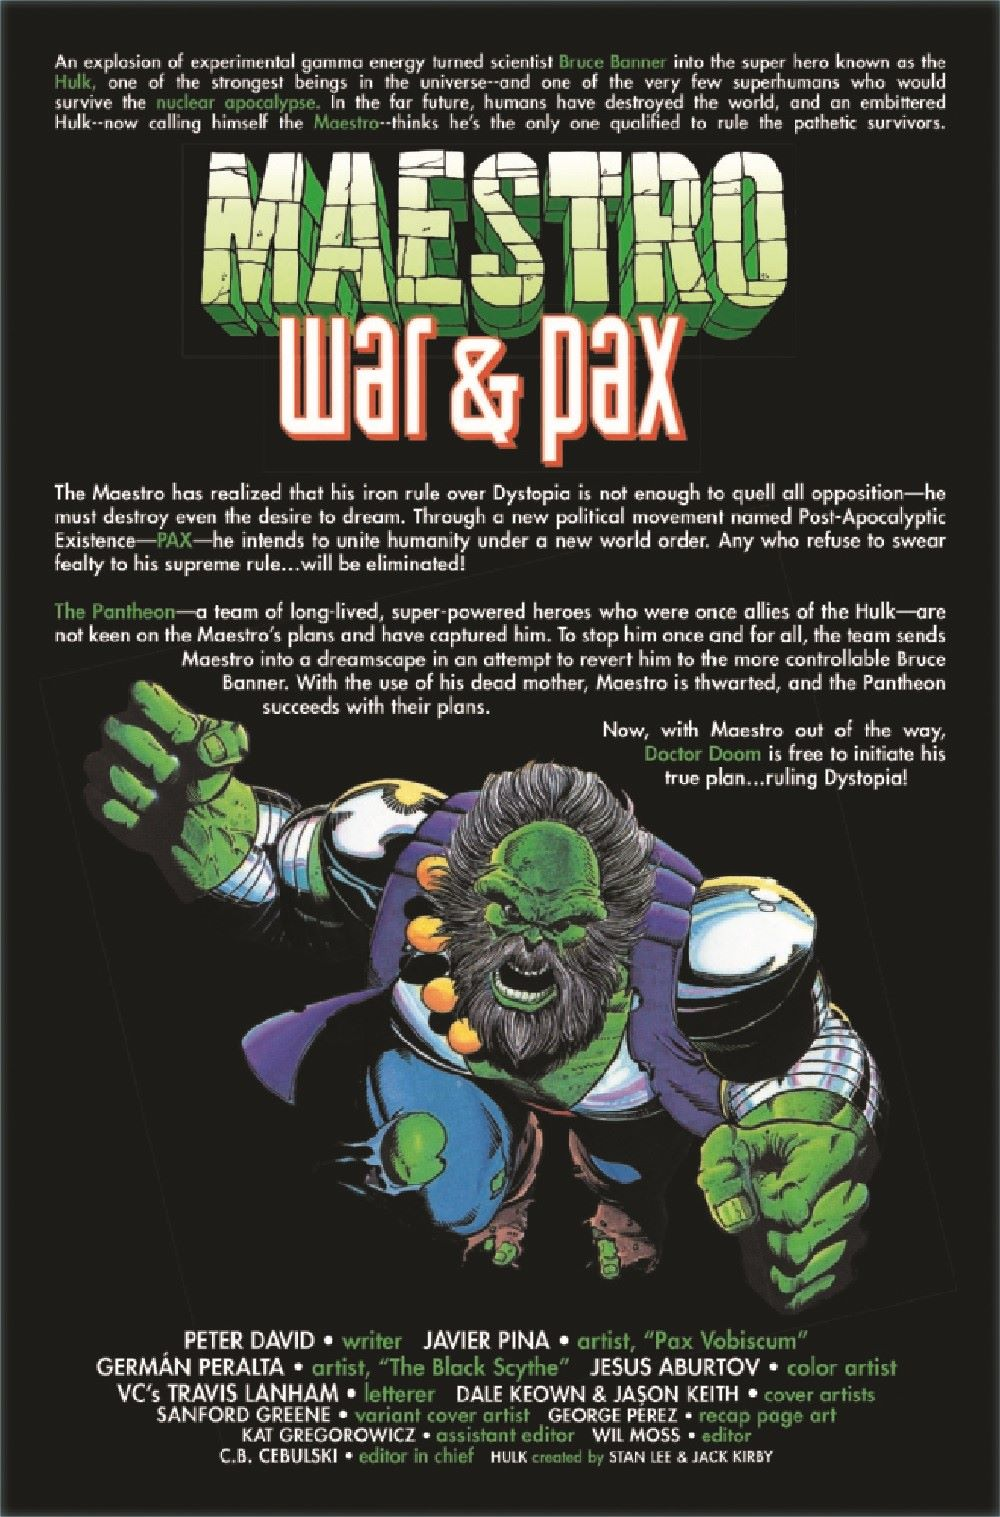 MAESTROWAP2021004_Preview-2 ComicList Previews: MAESTRO WAR AND PAX #4 (OF 5)